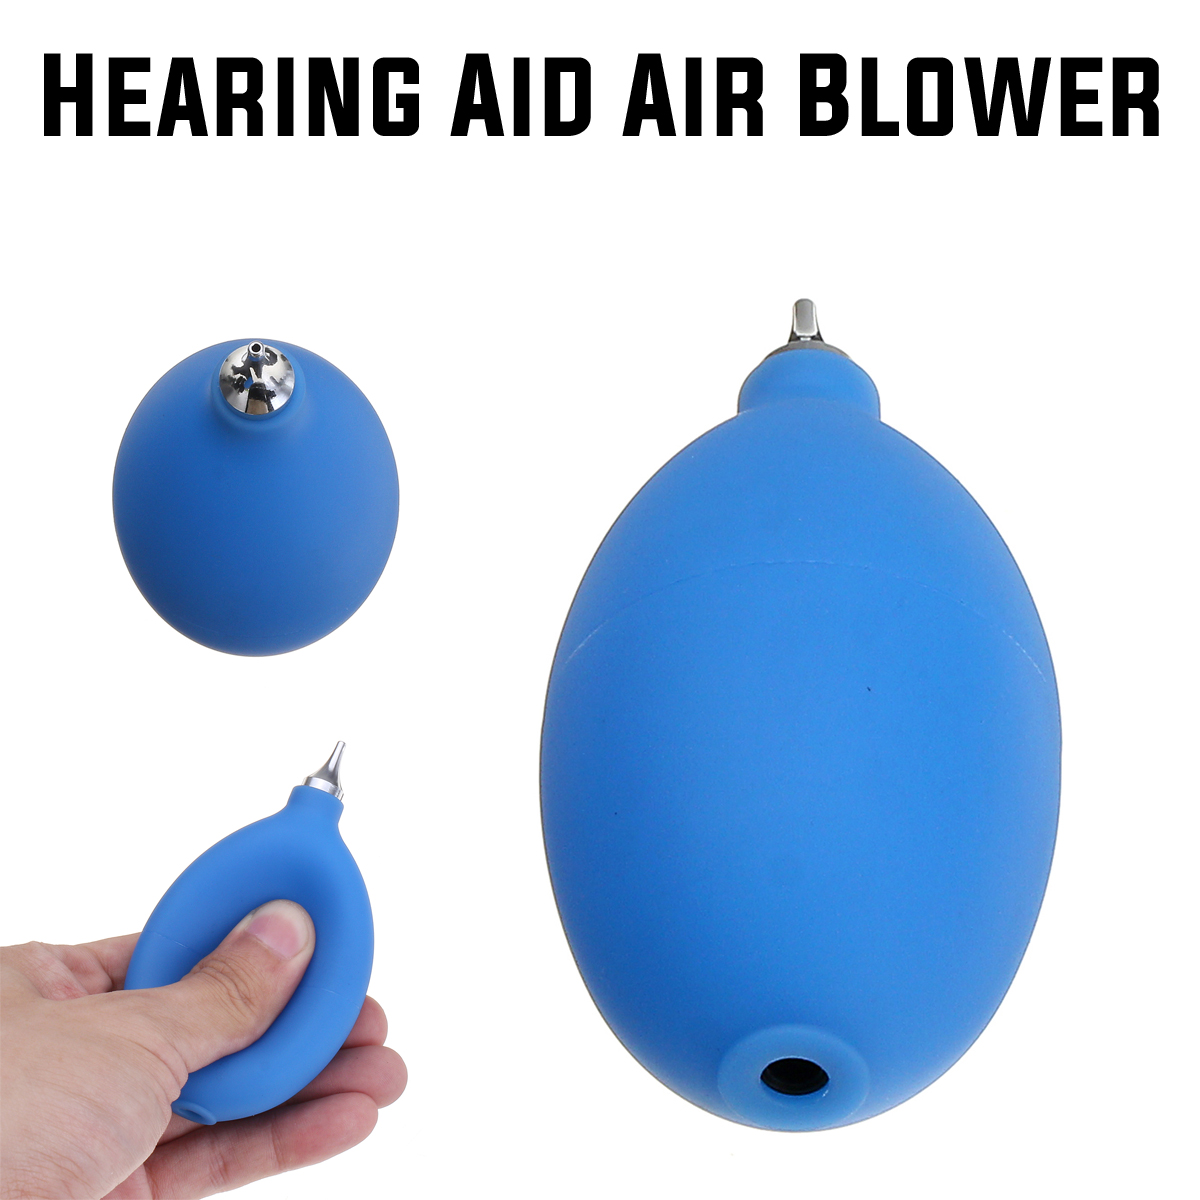 Hearing Aid Dryer Pump Cleaner ABS Metal Tip Duster Cleaning Air Blower Puffer